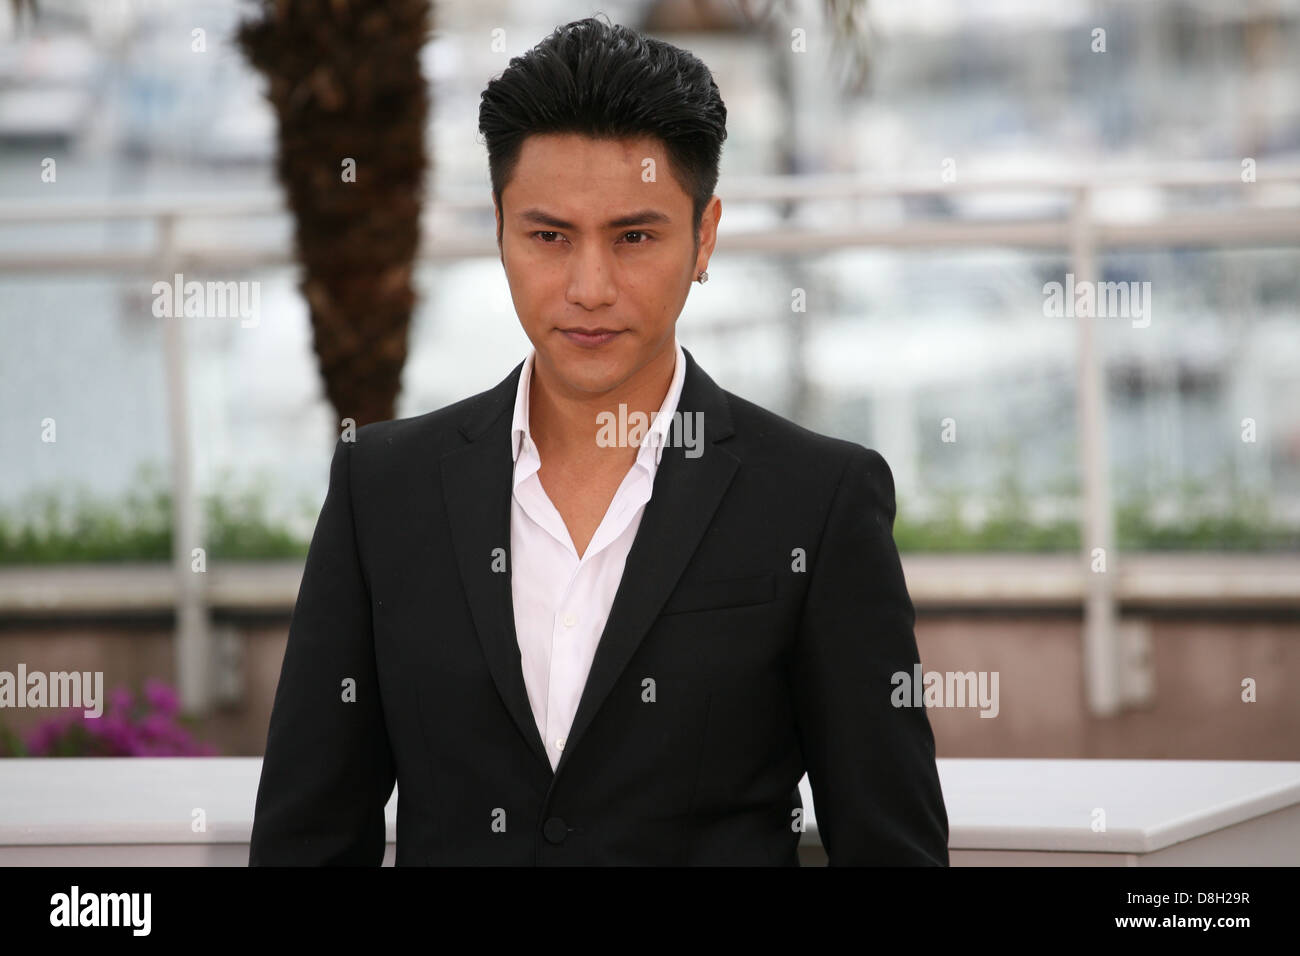 Actor Kun Chen at the Bends film photocall at the Cannes Film Festival 18th May 2013 - Stock Image